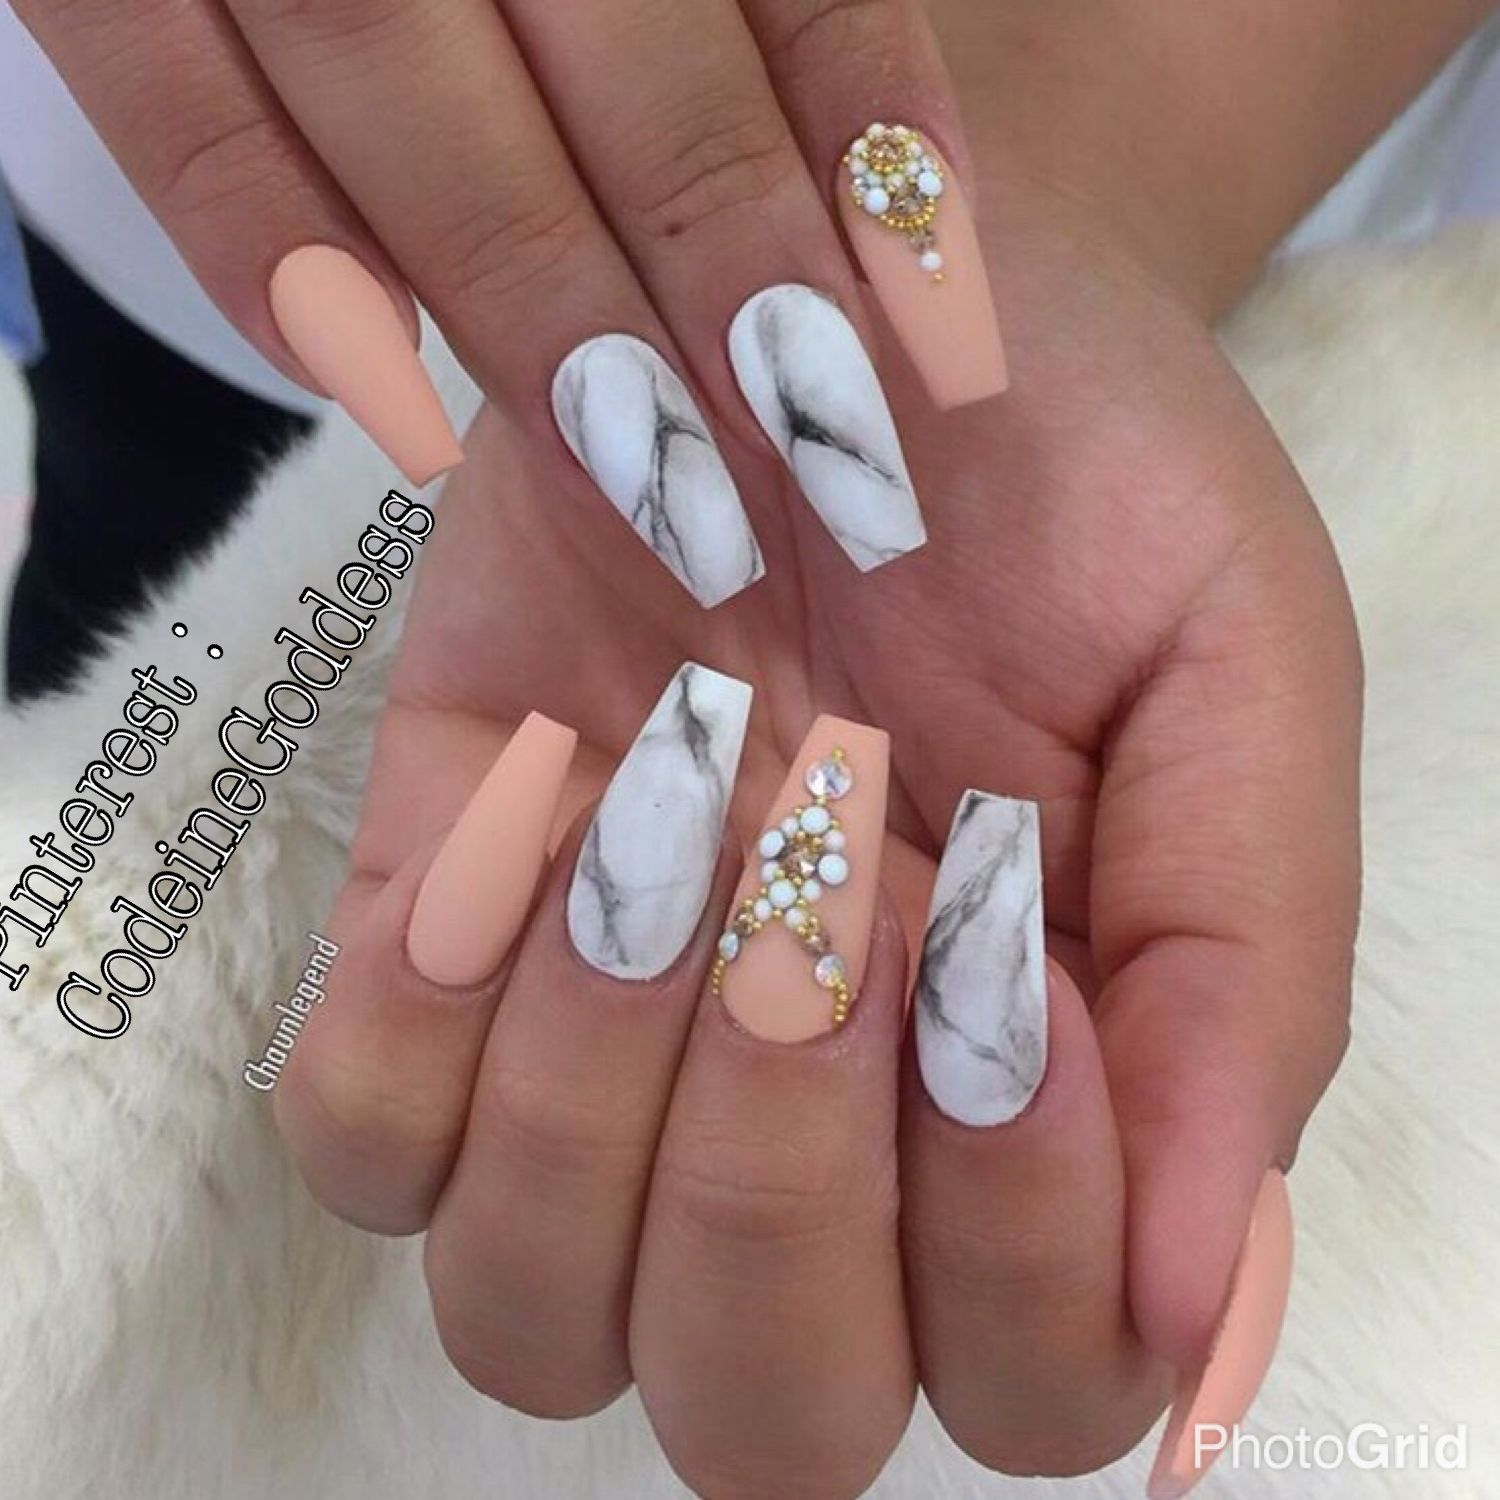 Pin by CodeineGoddess✨ on Cut It ✨   Pinterest   Marble nails